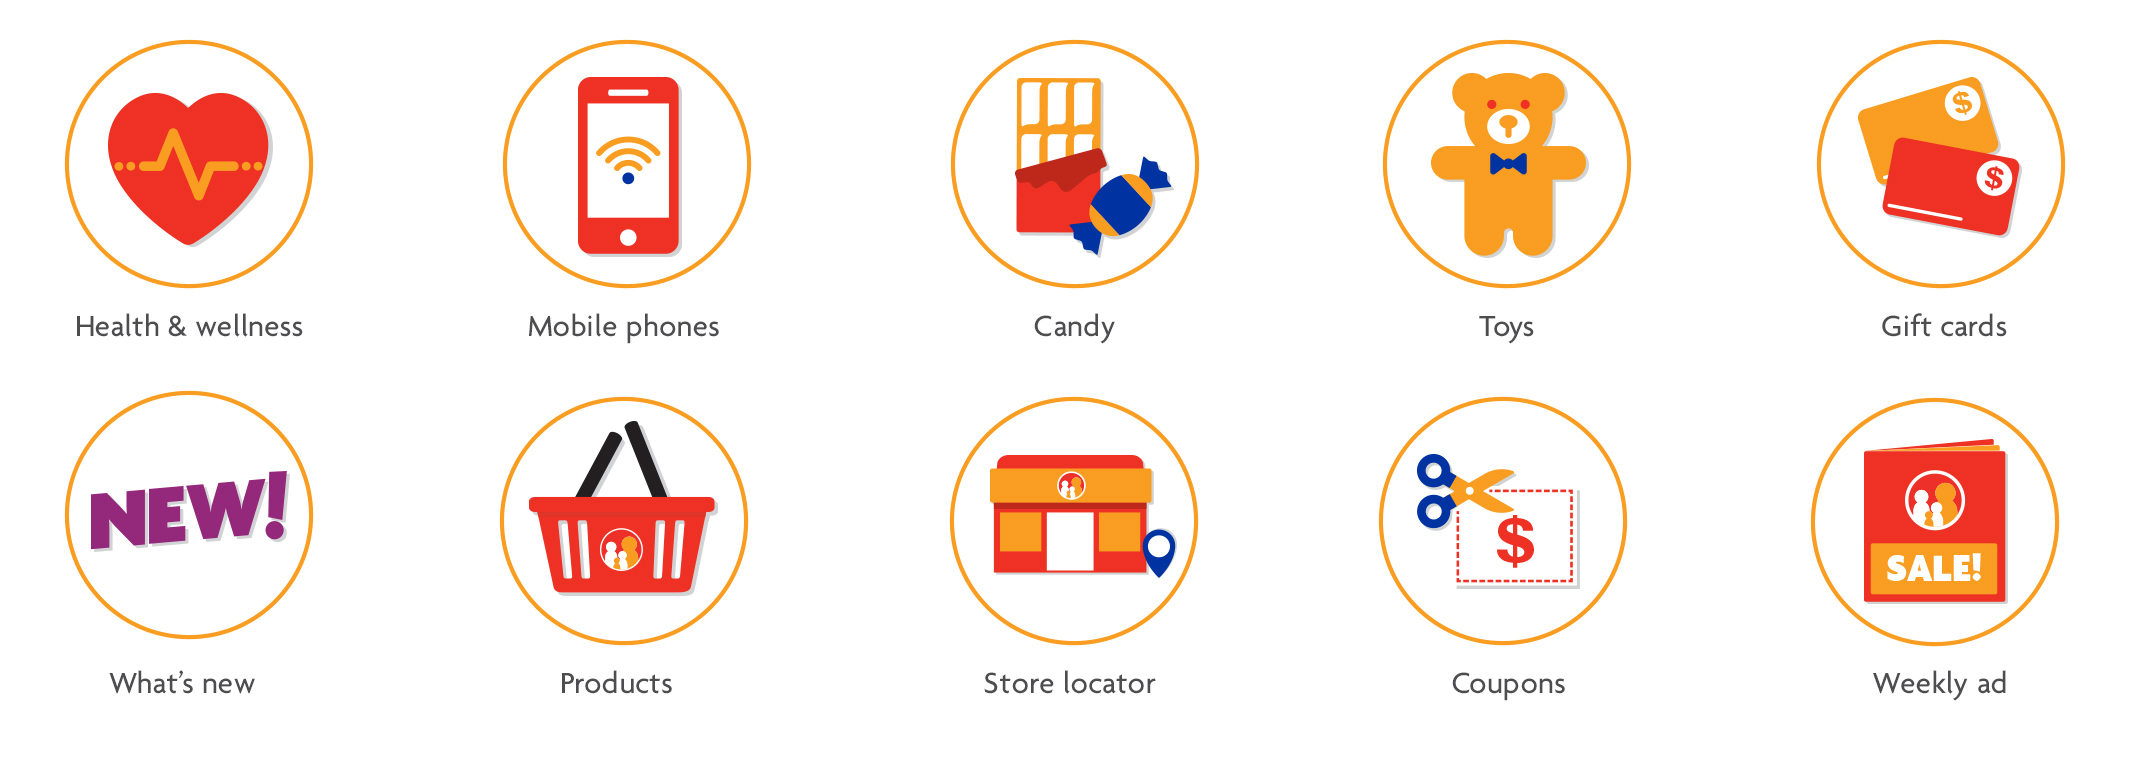 Iconography created to help navigation on the new website